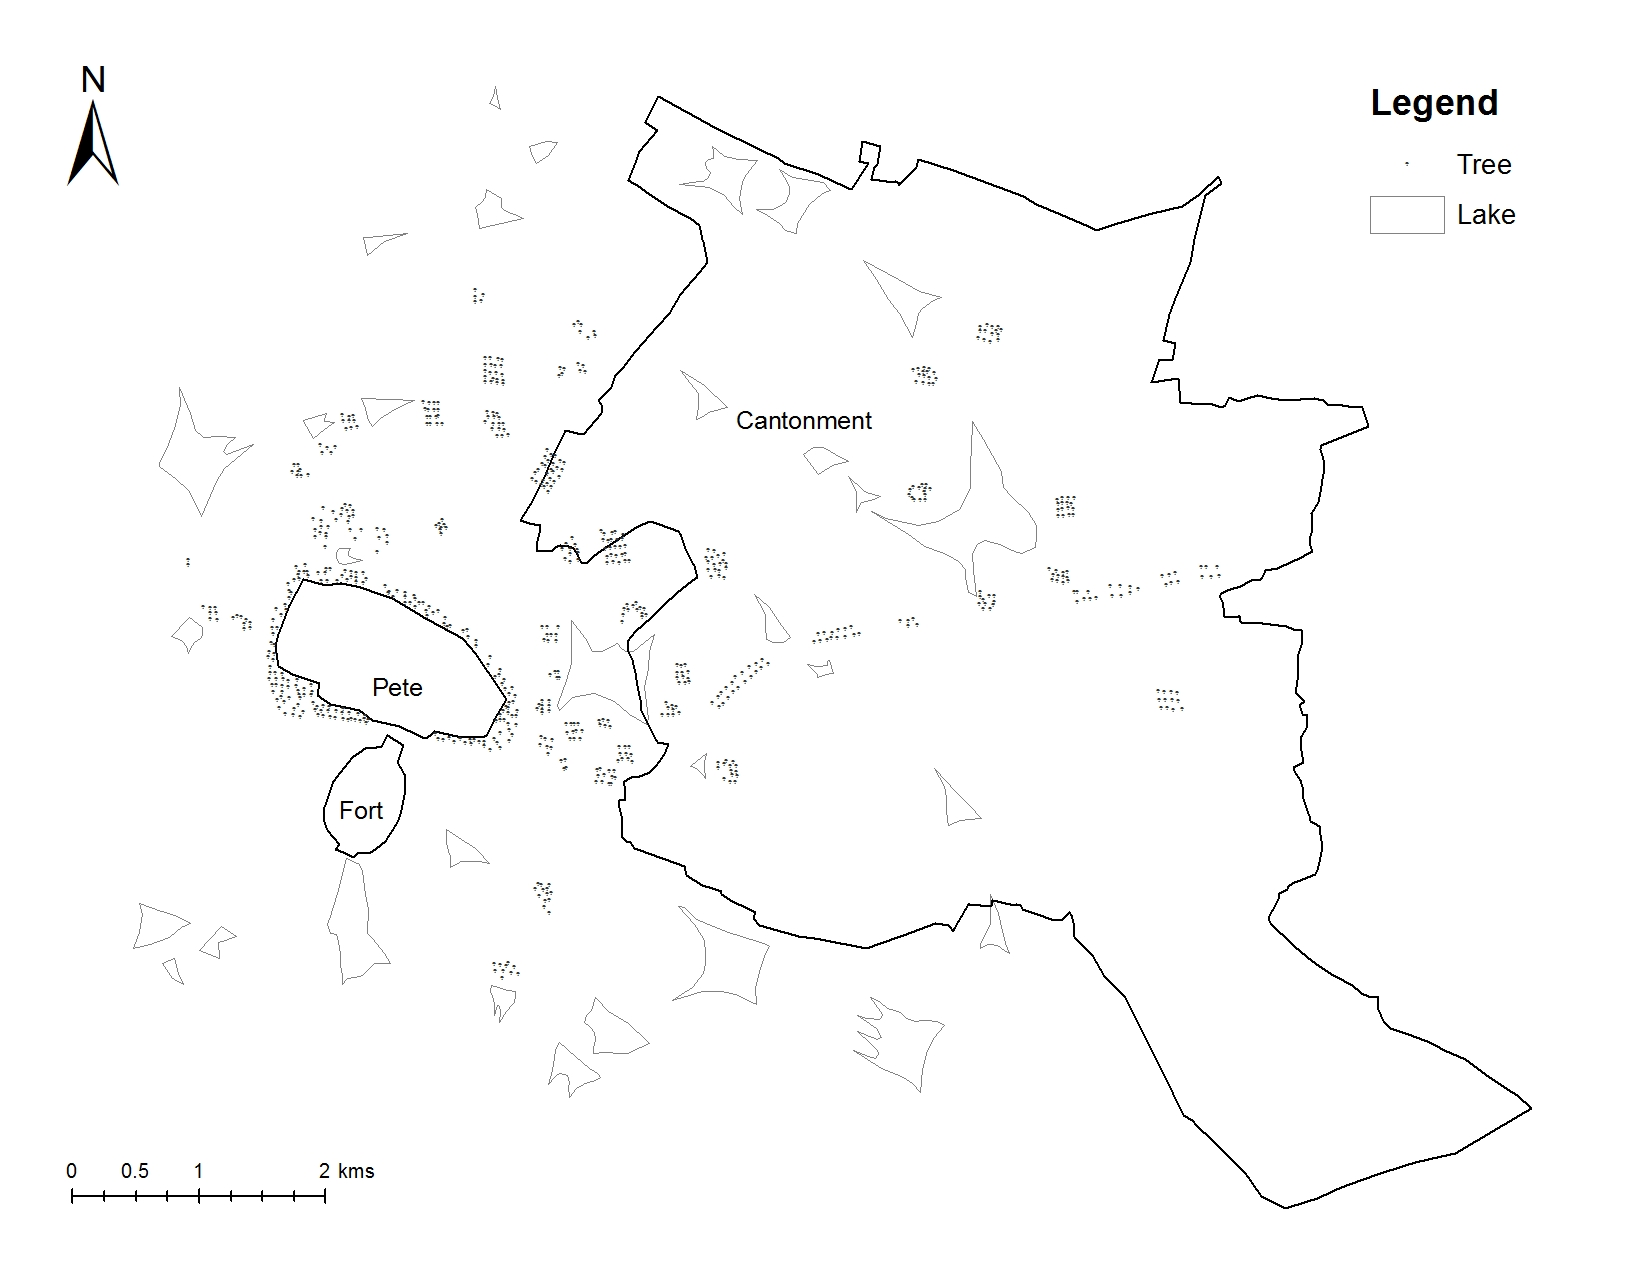 Distribution of trees and lakes in Bengaluru in 1791